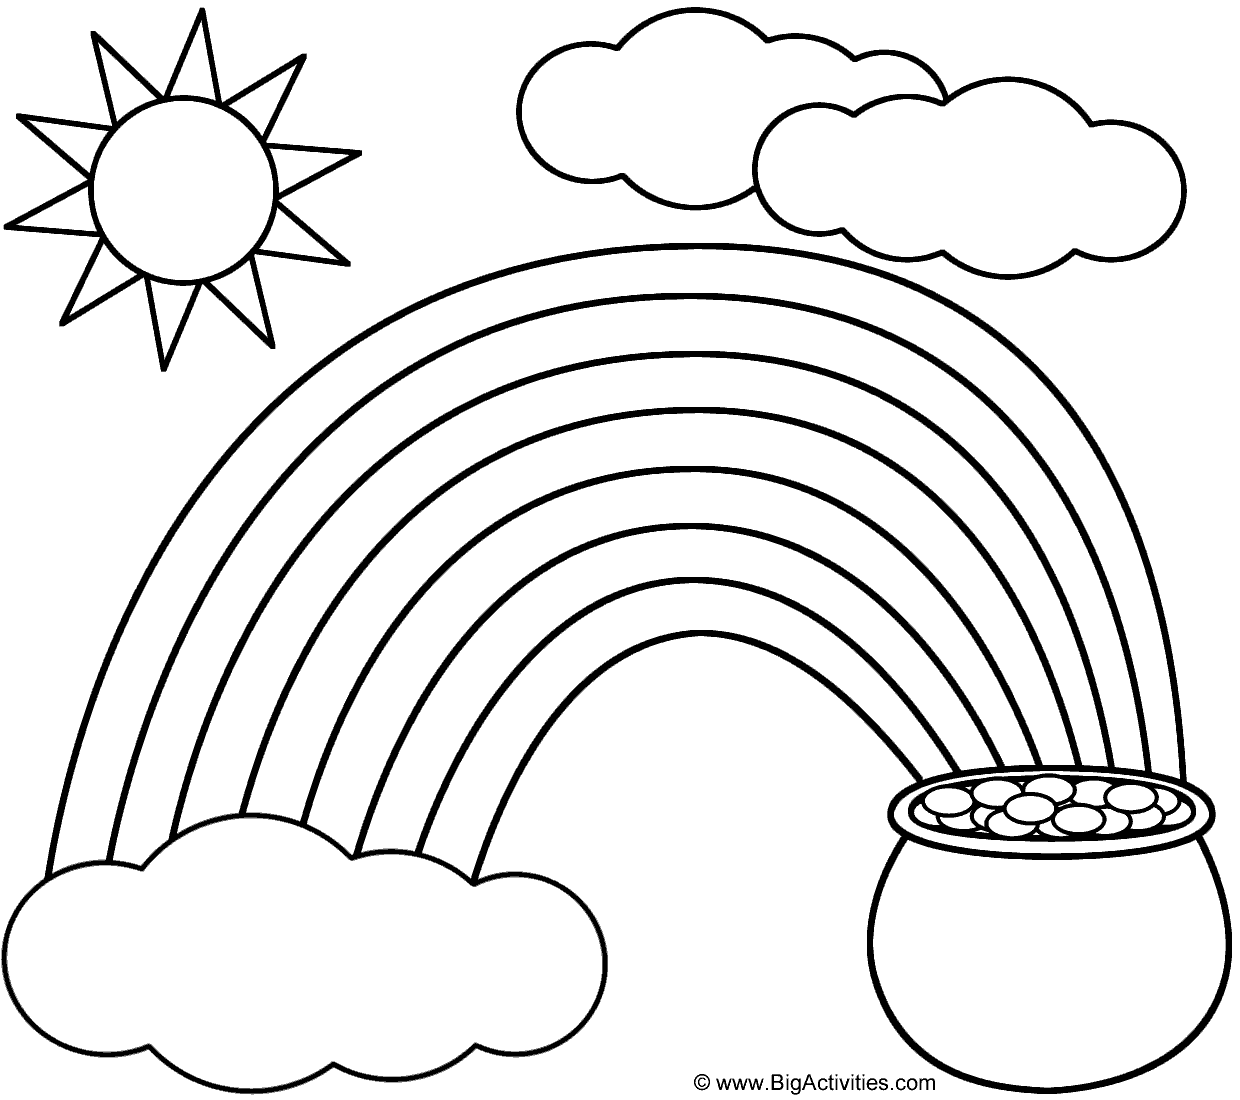 Rainbow, Pot Of Gold, Sun, And Clouds   Coloring Page (St. Patricku0027s Day)